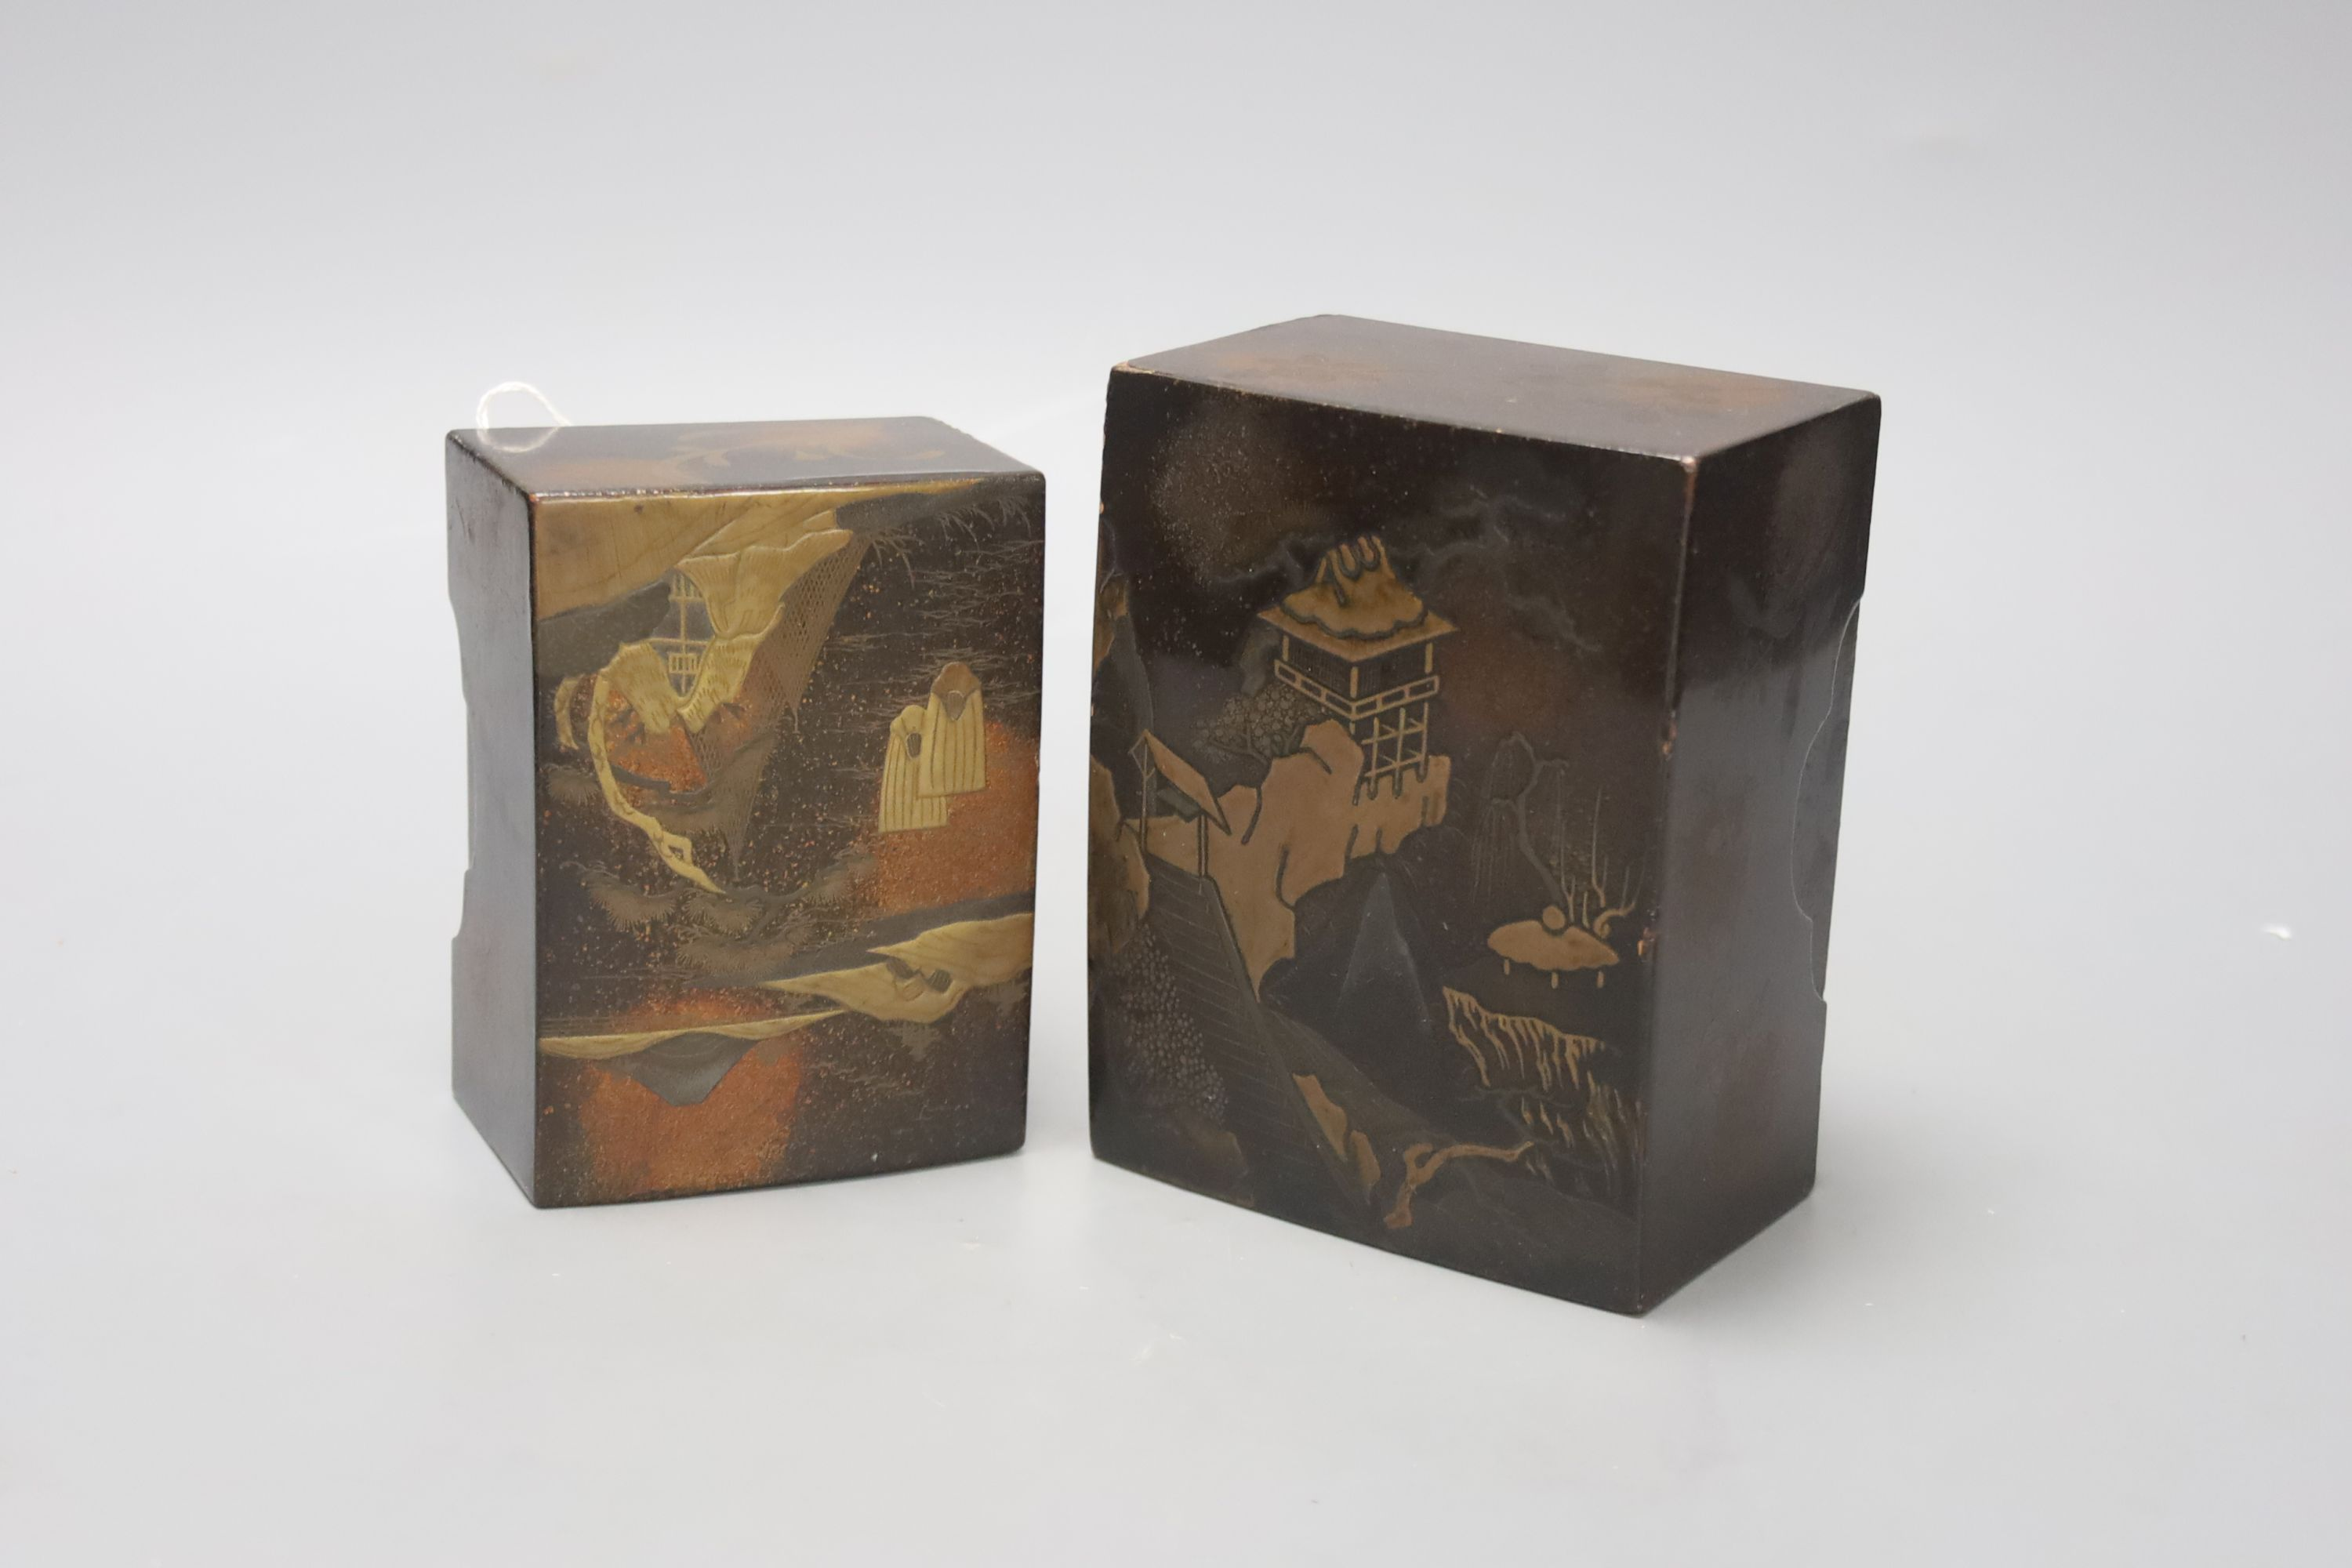 Two Japanese lacquer boxes, 19th century, largest 13.5cm